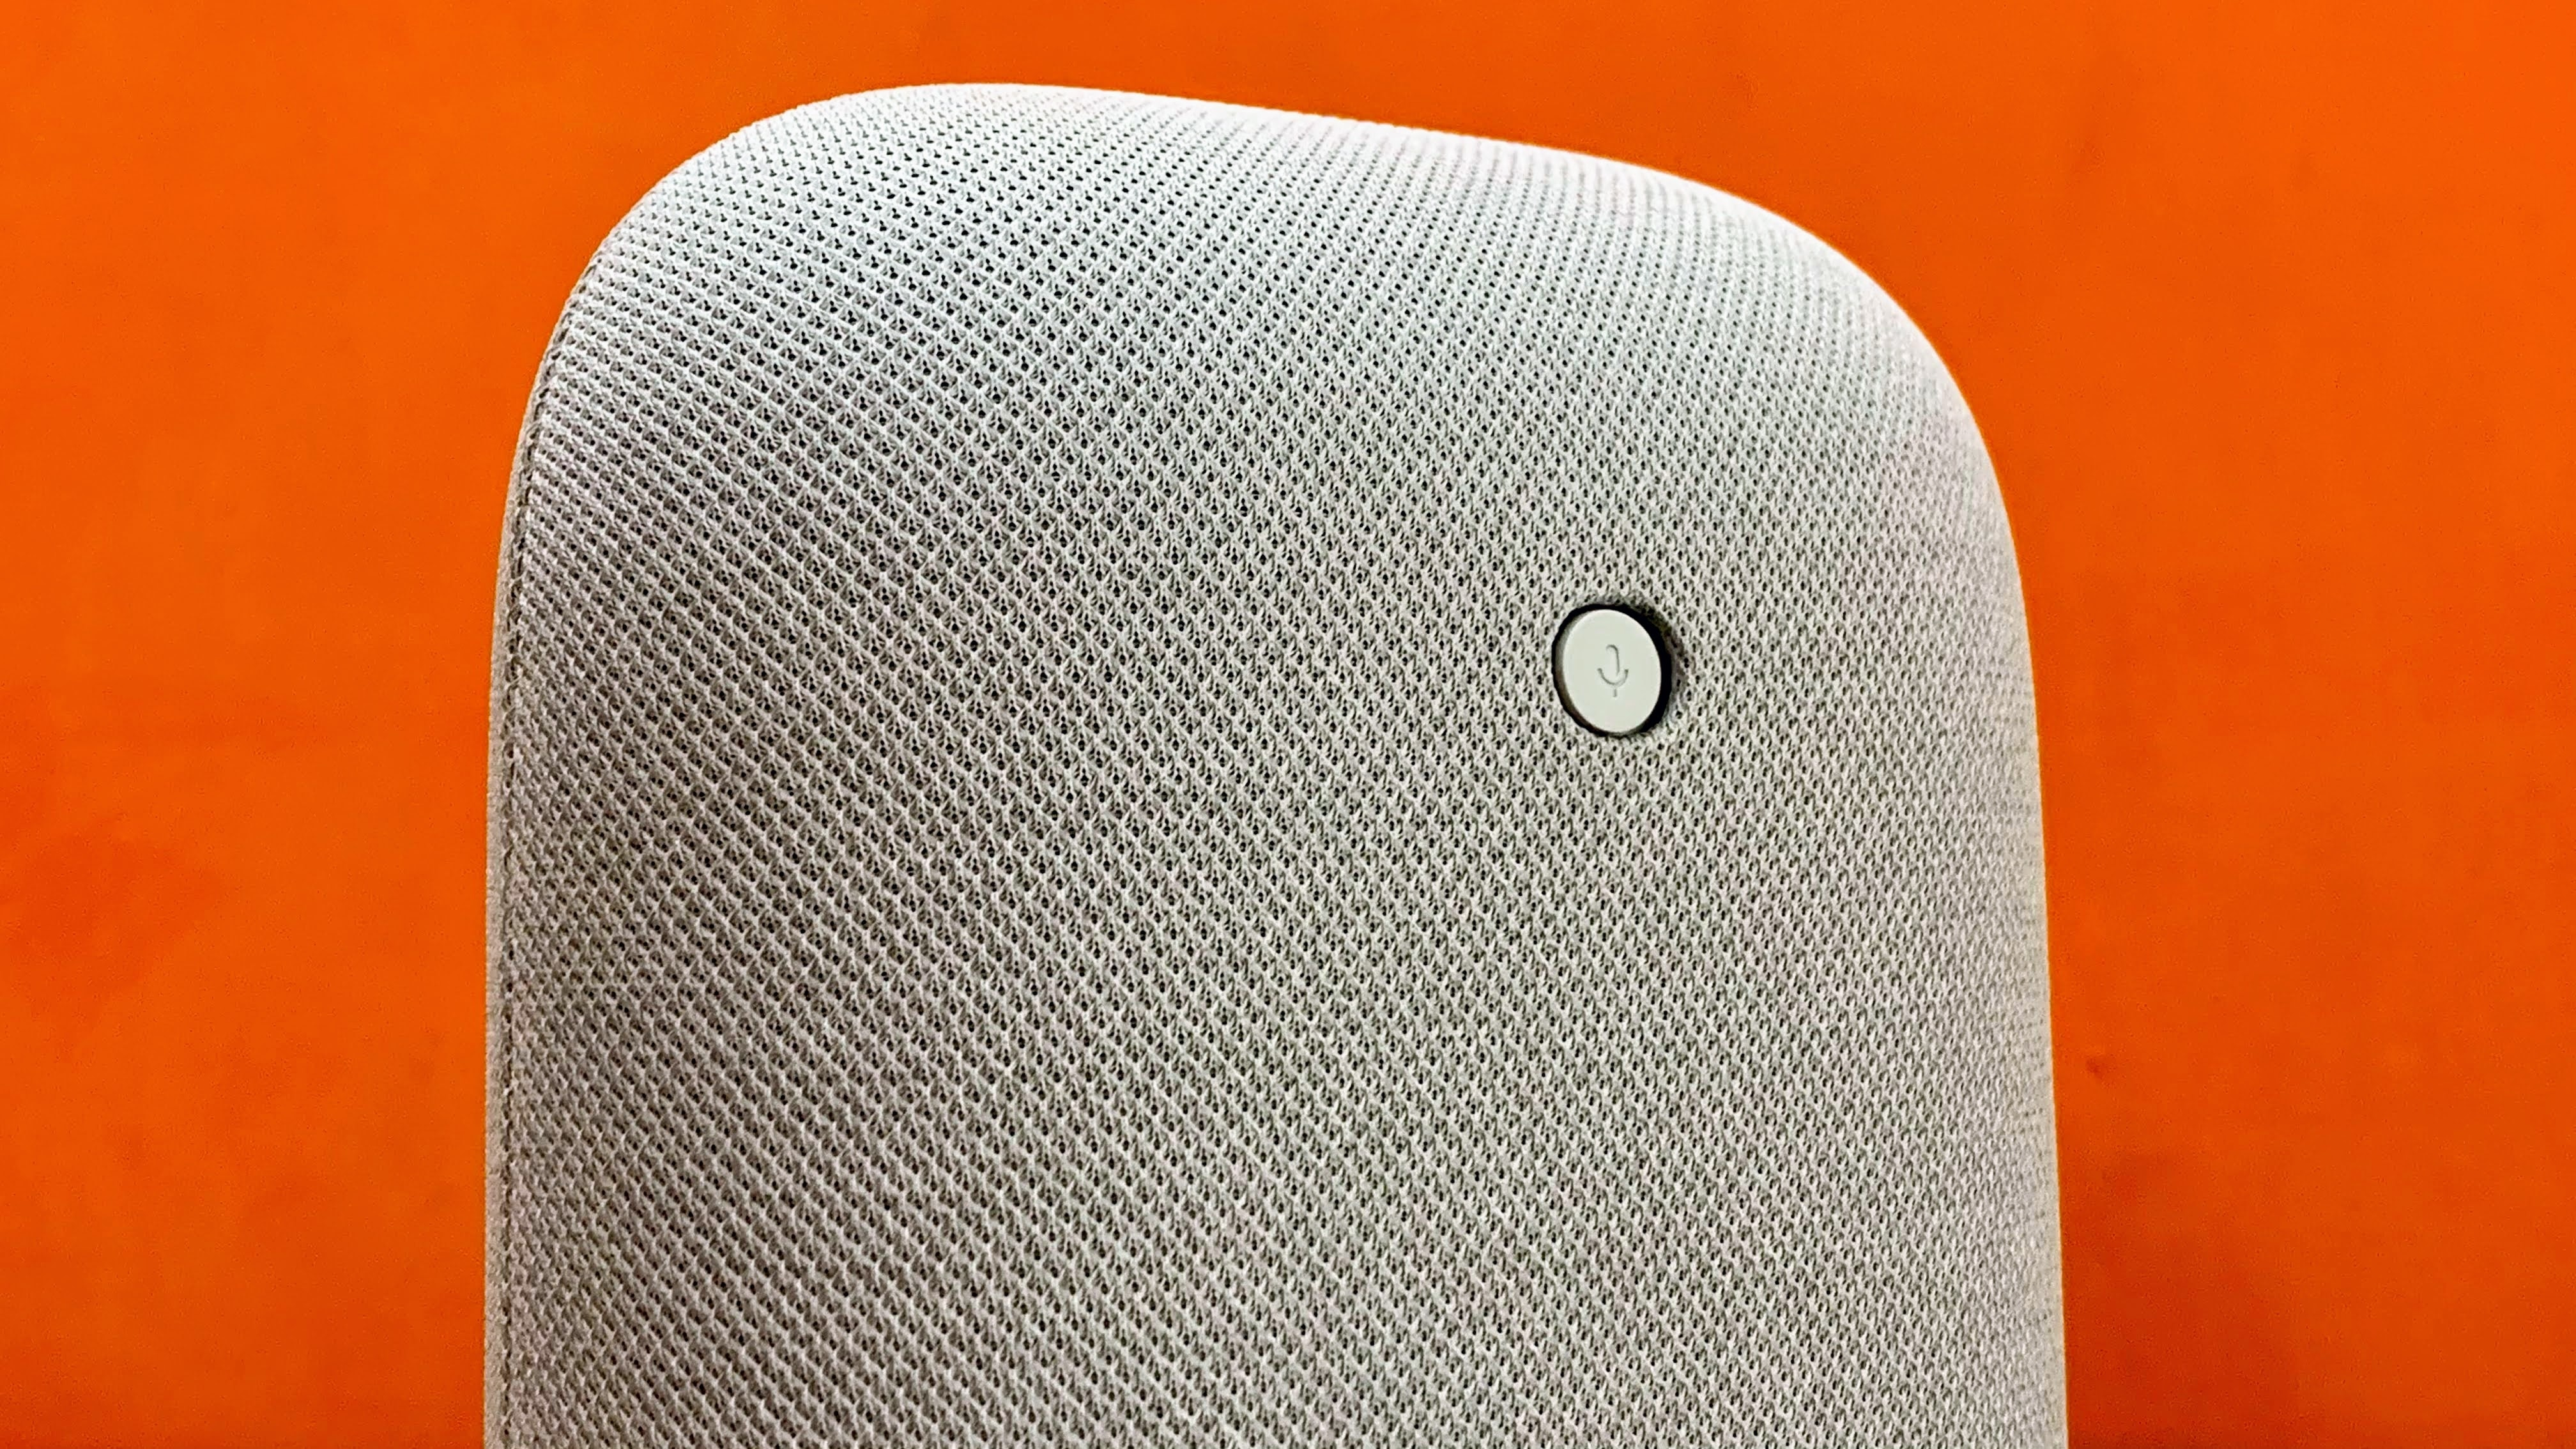 There is a microphone disable button as well like what we have seen in previous Google Home products.